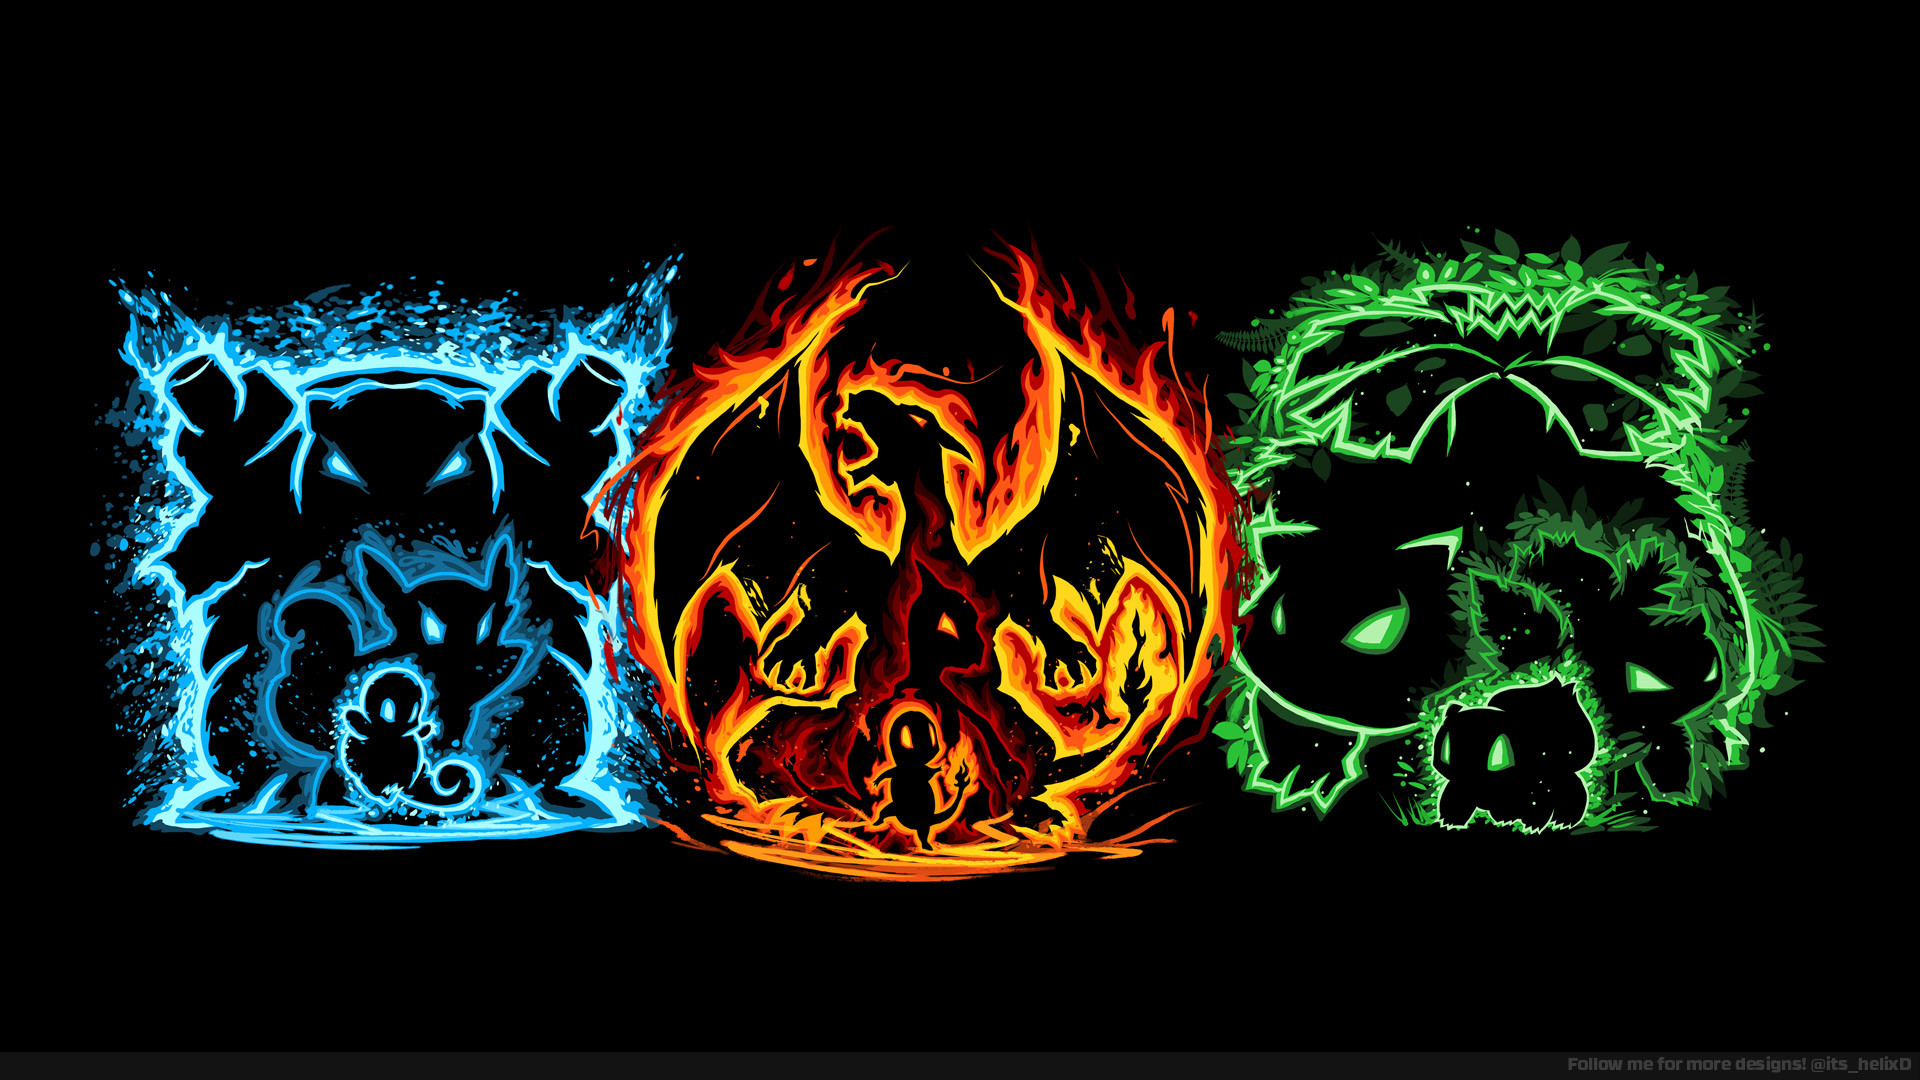 1920x1080 Evolution of Fire, Water, and Grass (1080p Wallpaper). Thanks for all